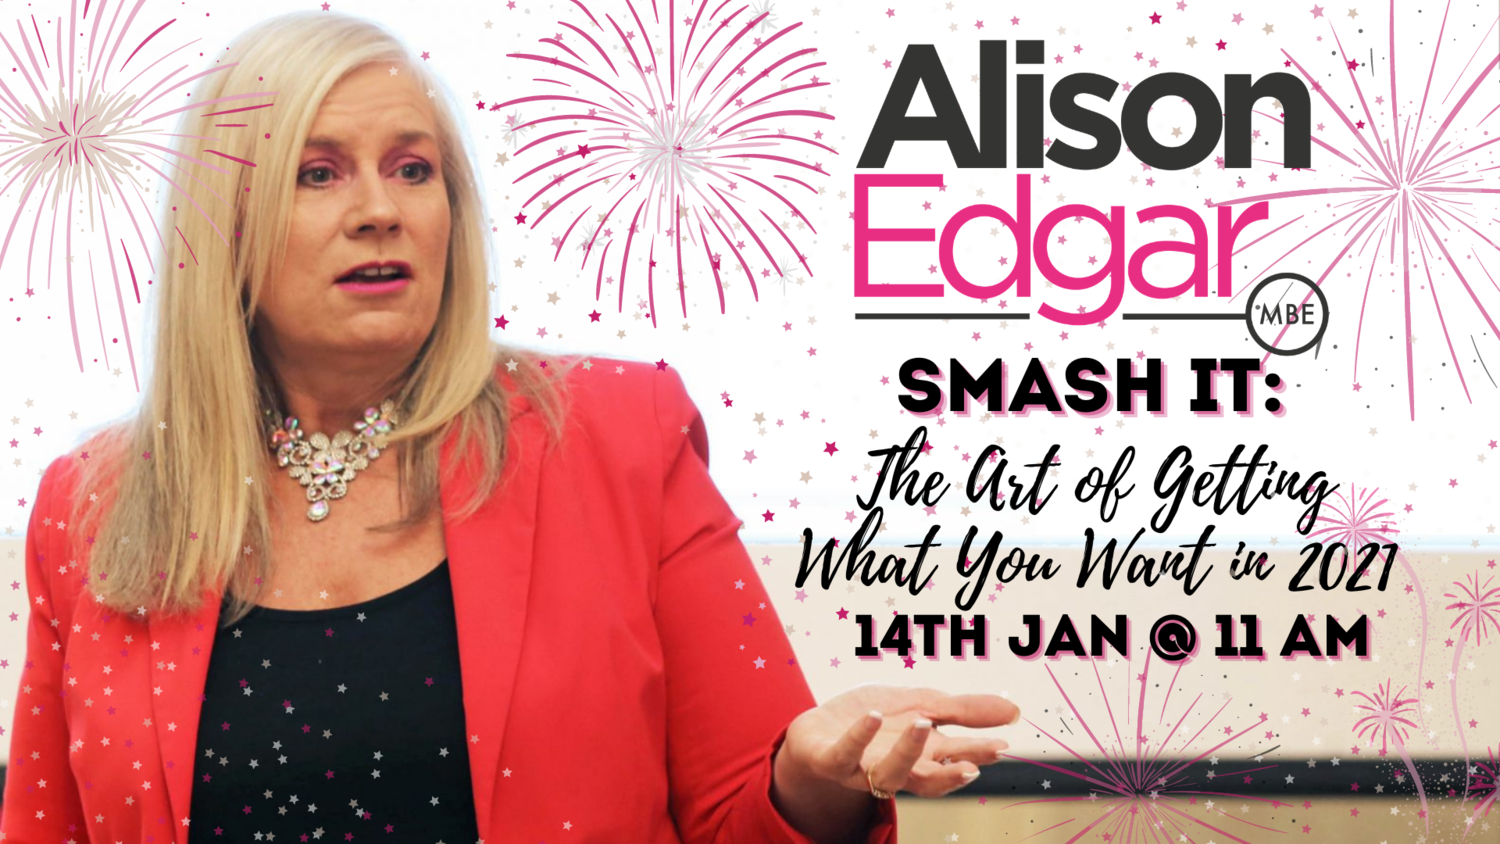 SMASH IT: The Art of Getting What YOU Want in 2021